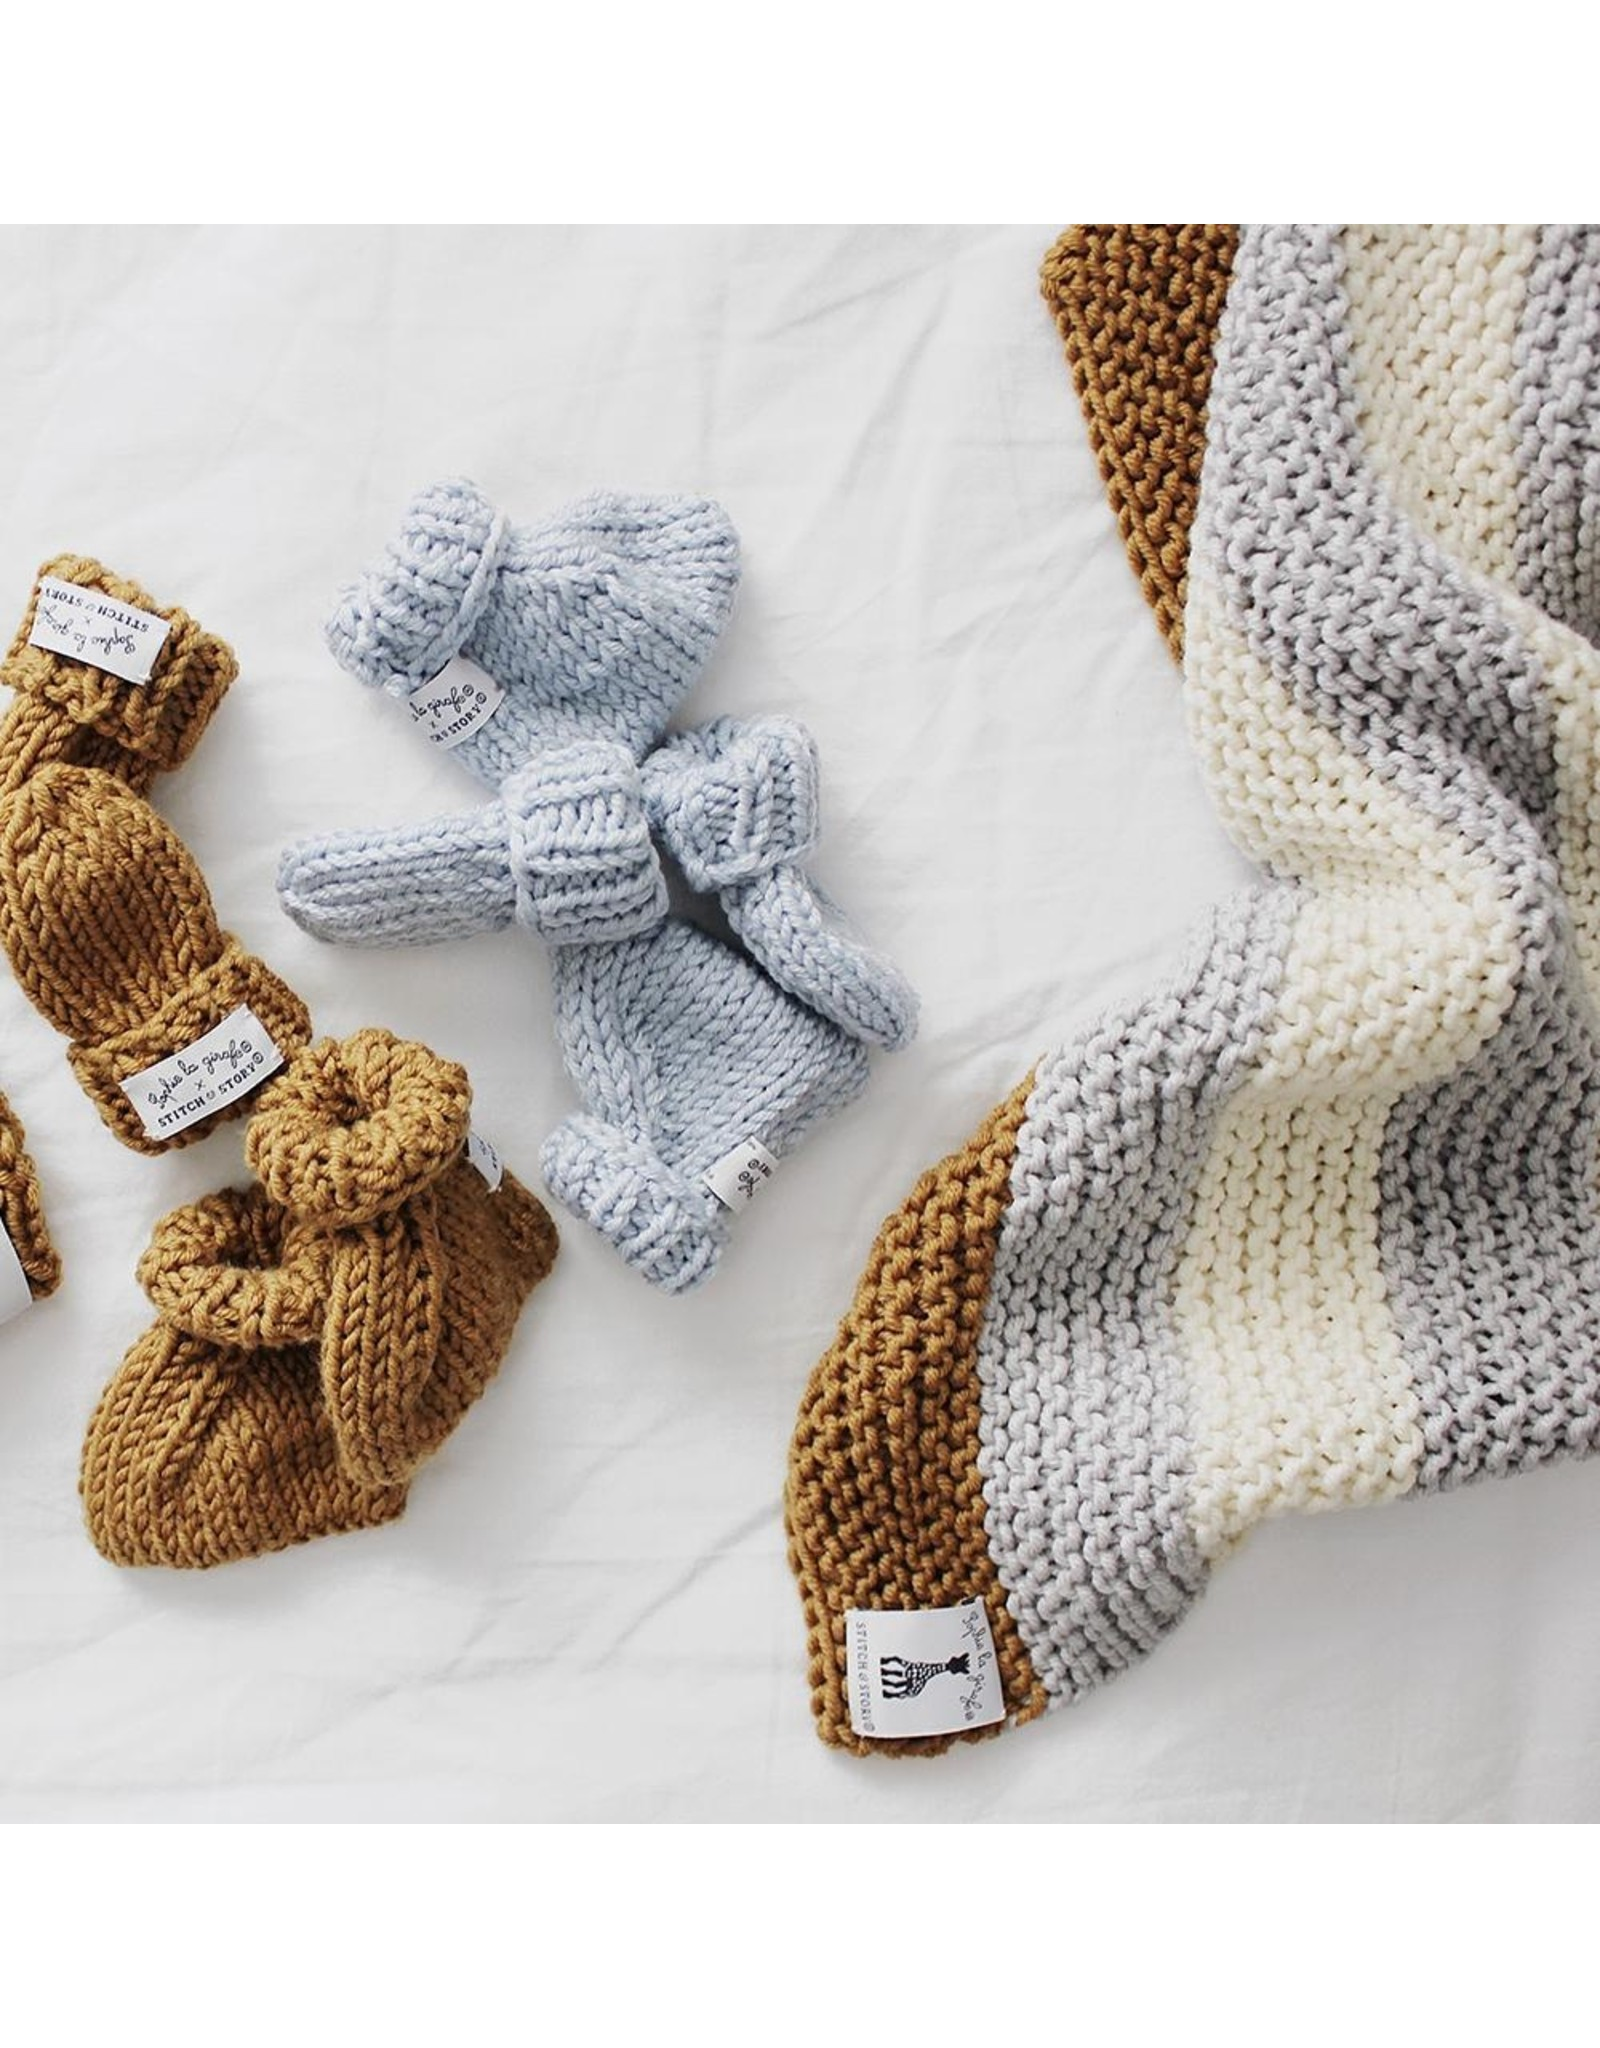 Stitch and Story Sophie La Girafe : Mini Mittens and Booties- Dove Grey